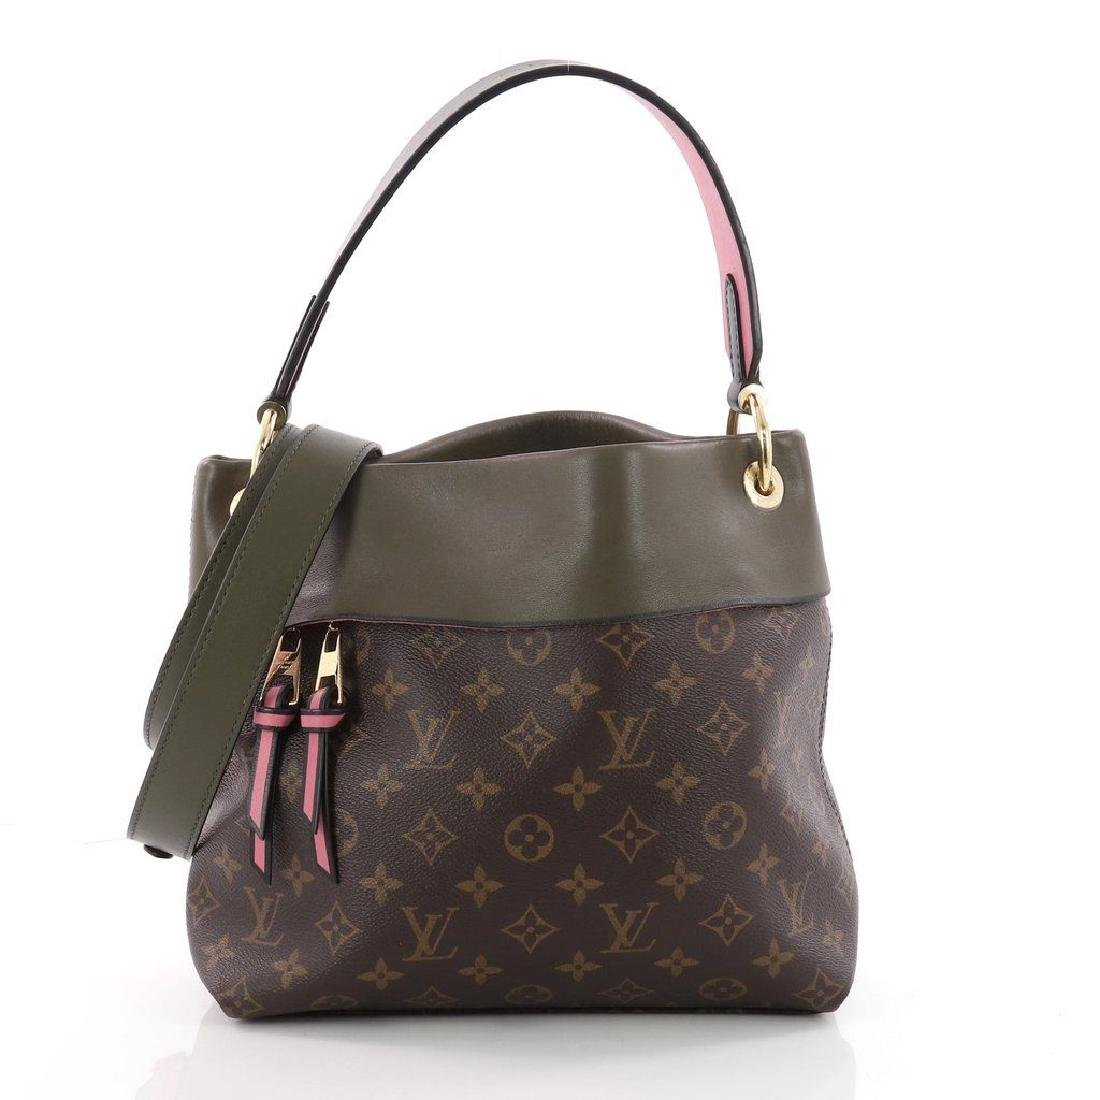 Louis Vuitton Tuileries Besace Bag with Strap in Olive - 3